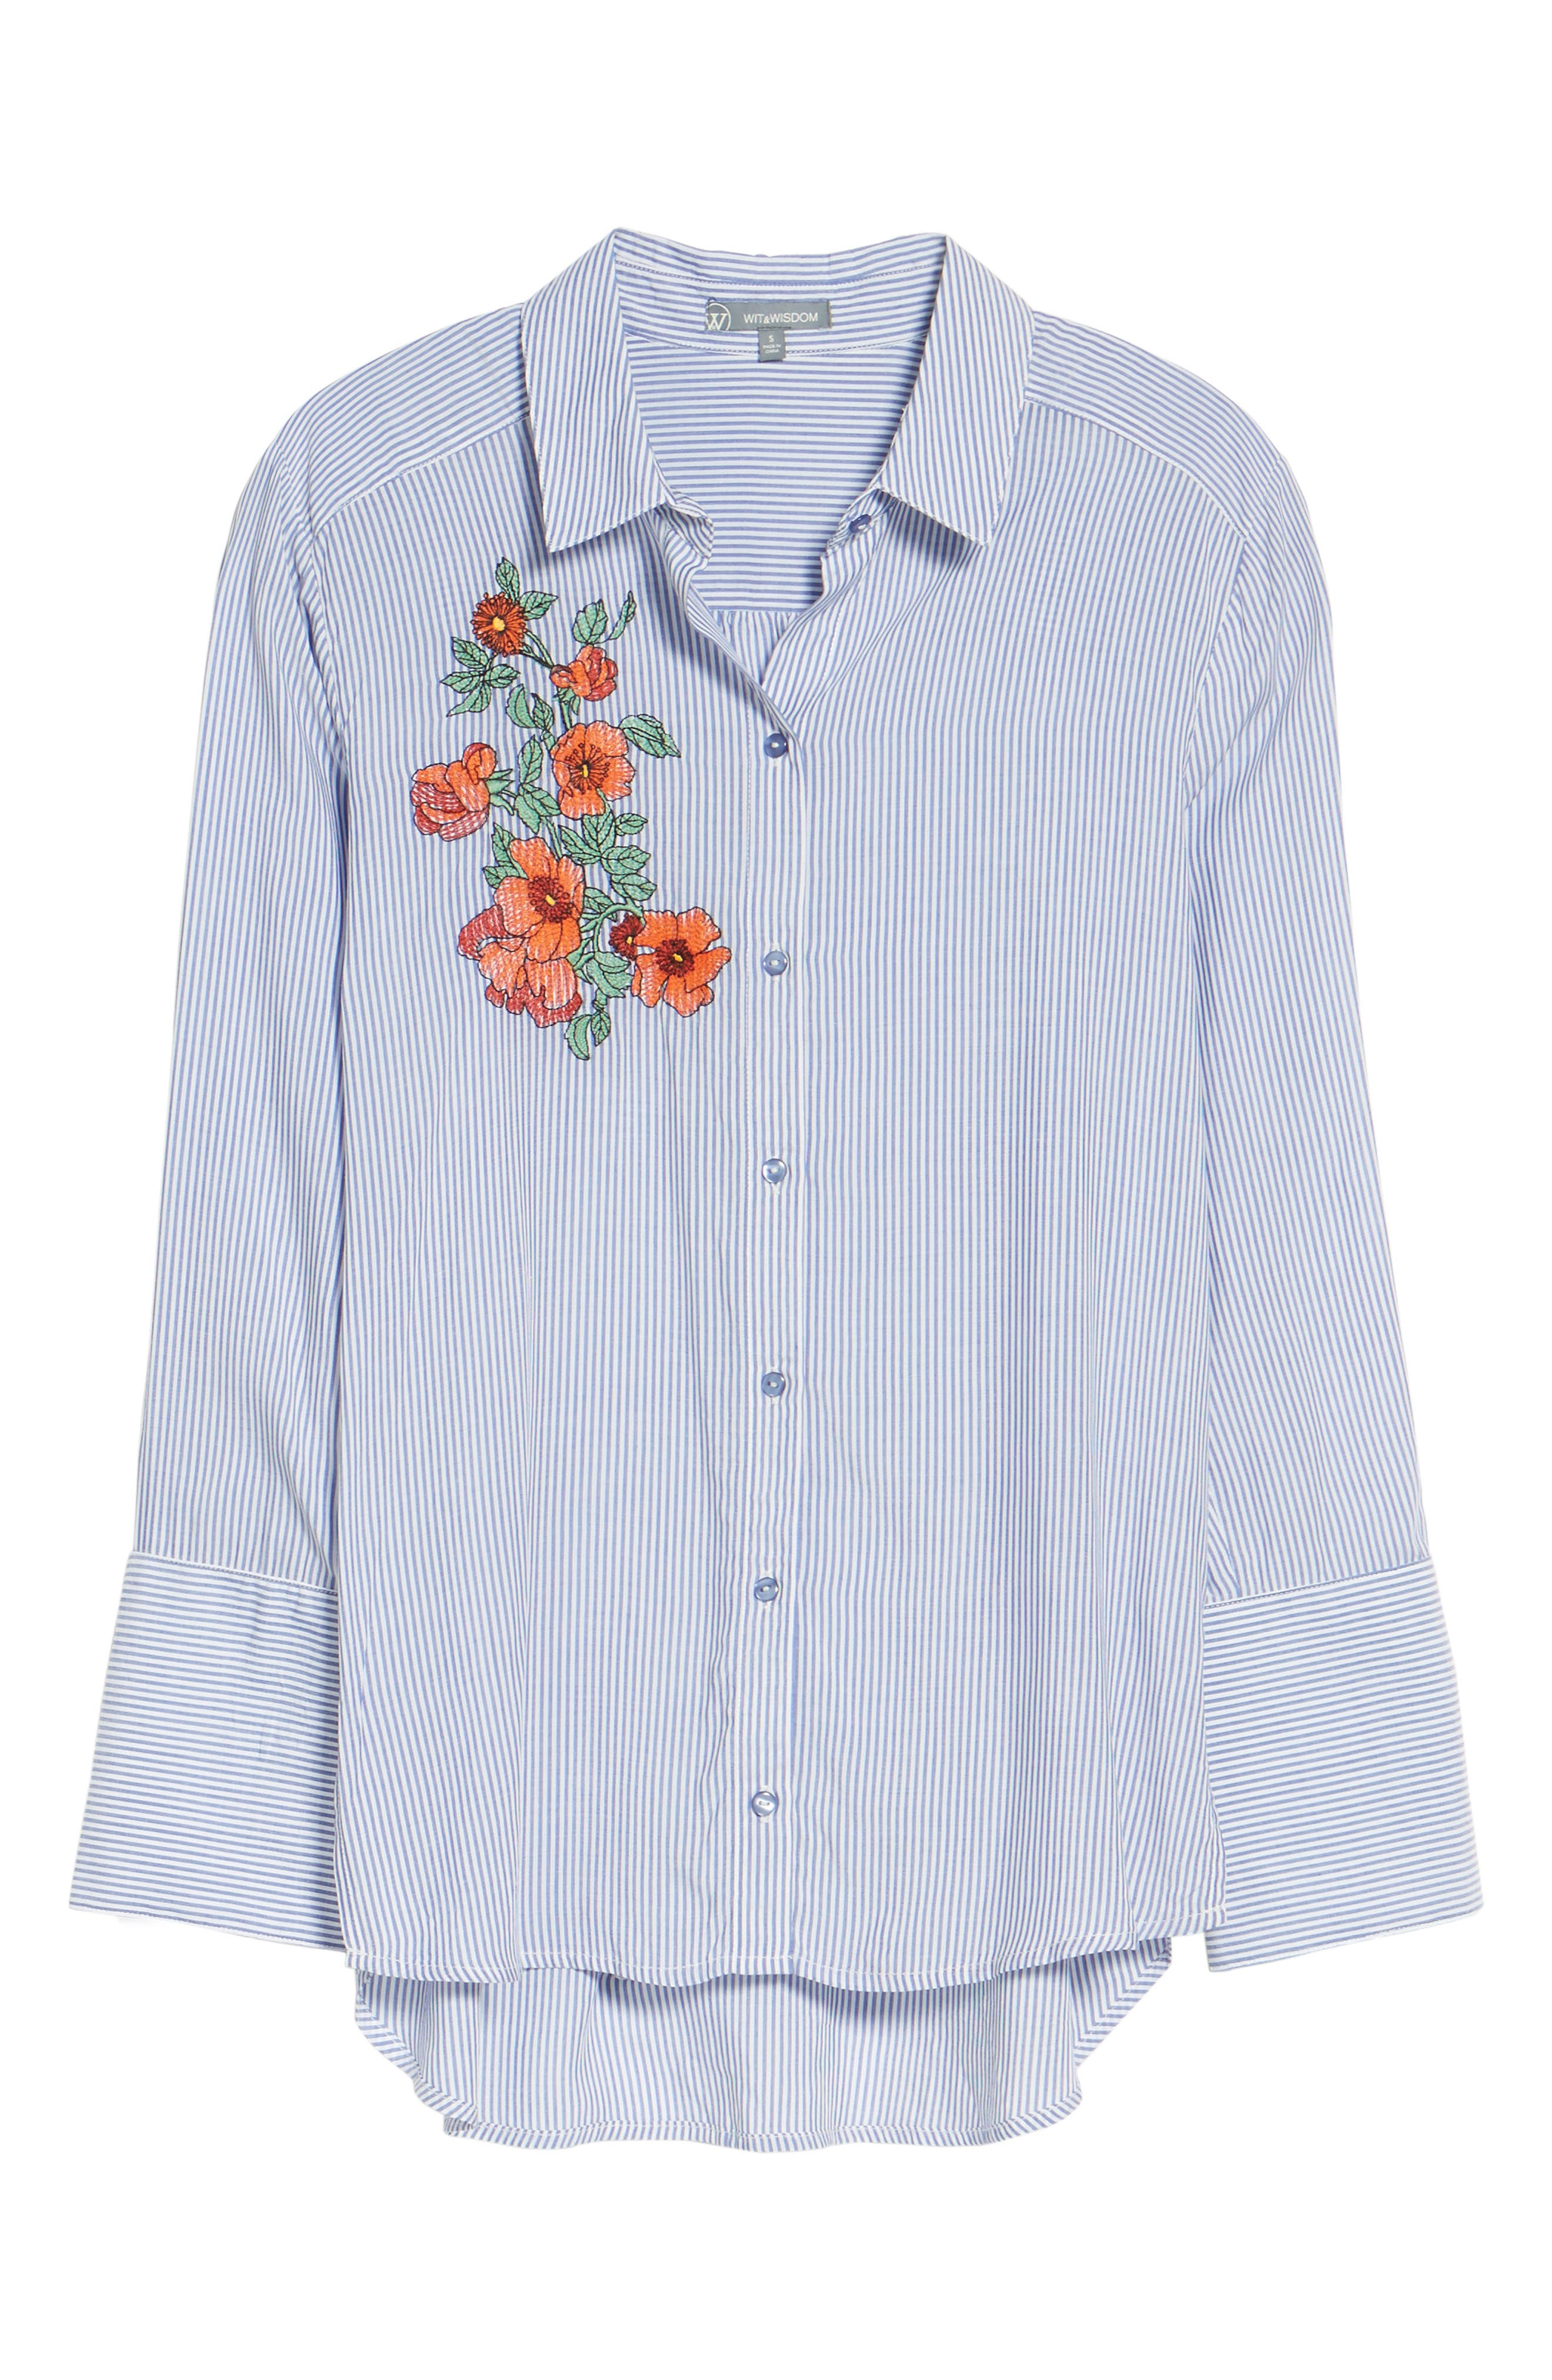 Wide Cuff Embroidered Button Down,                             Alternate thumbnail 6, color,                             450